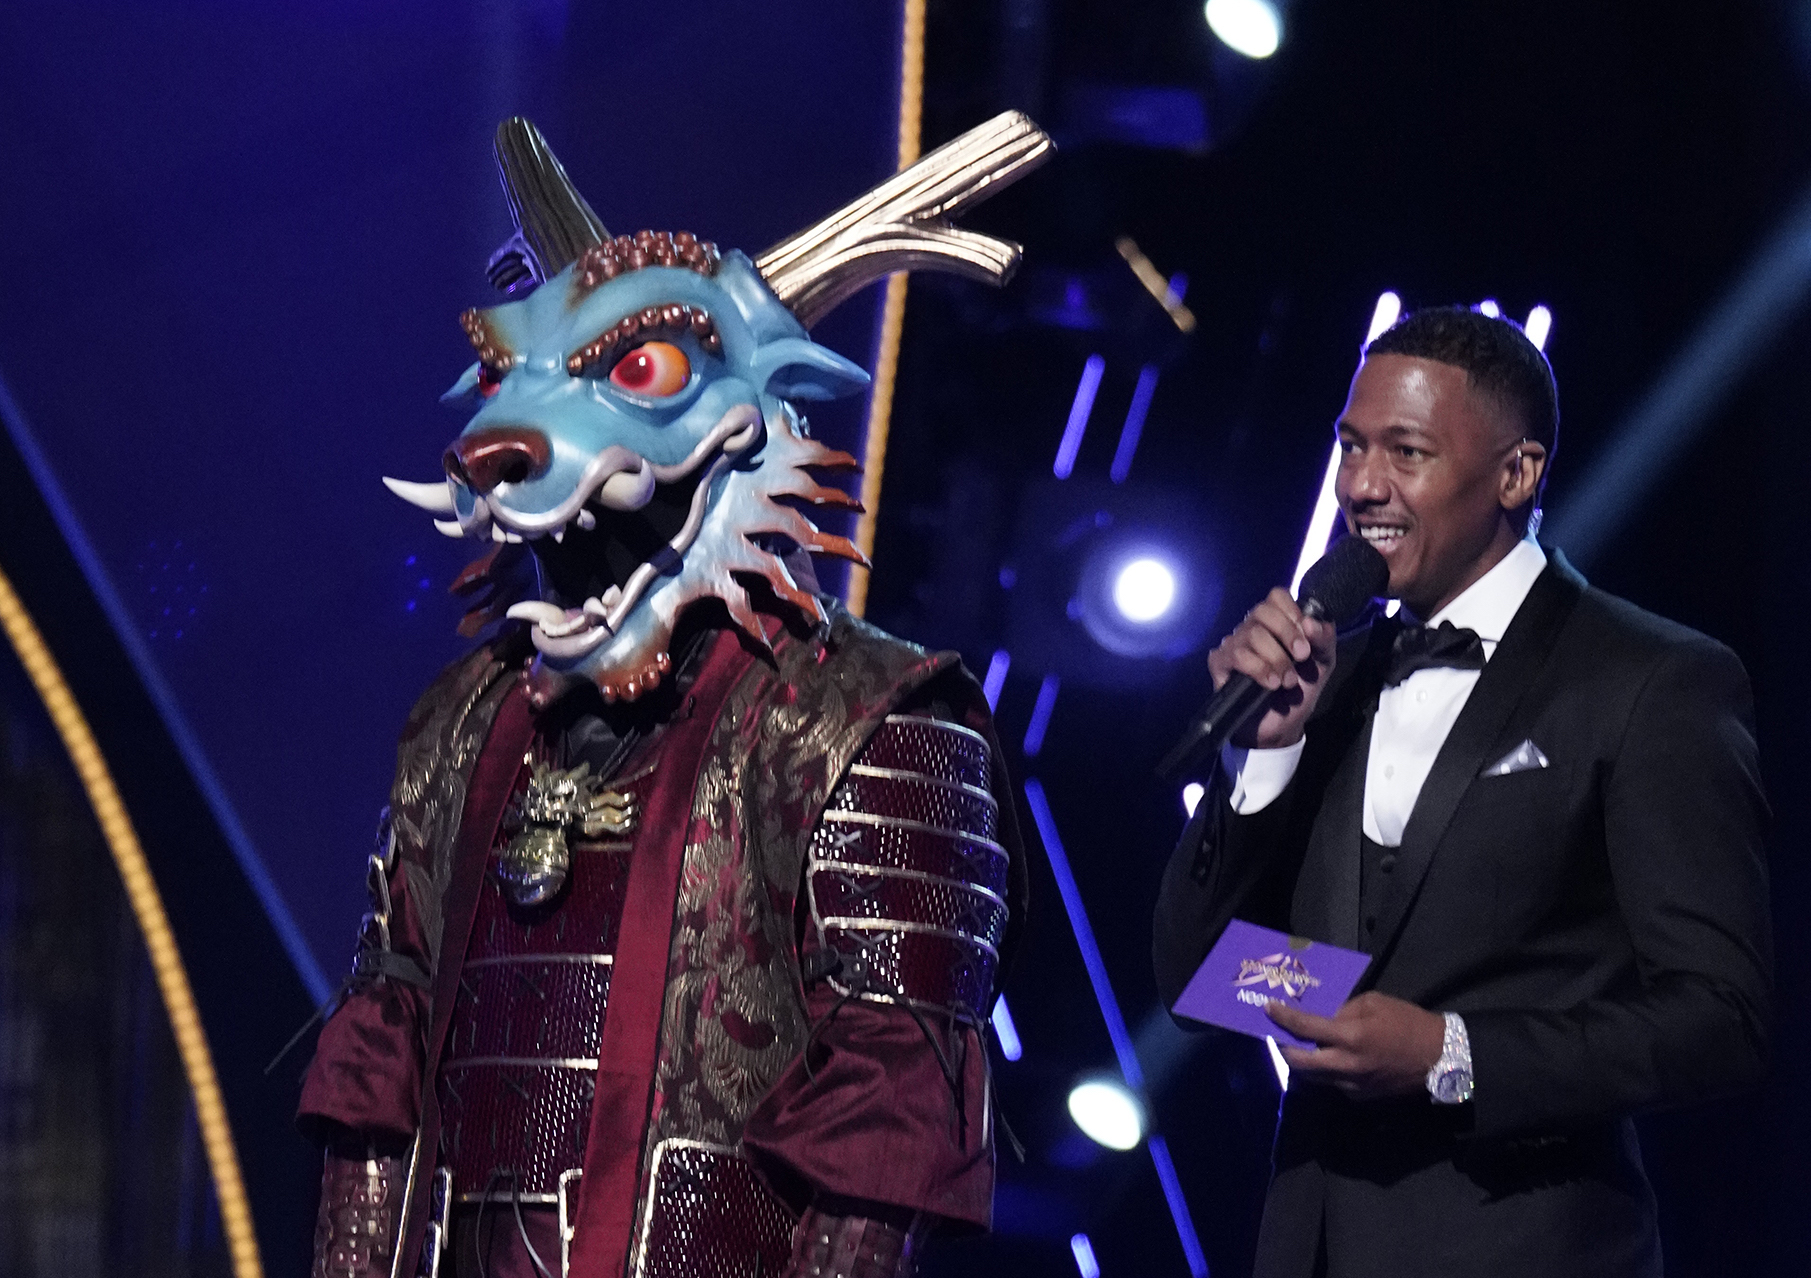 The Masked Singer The Dragon Gets Slayed In First Elimination Of Season ETCanada com